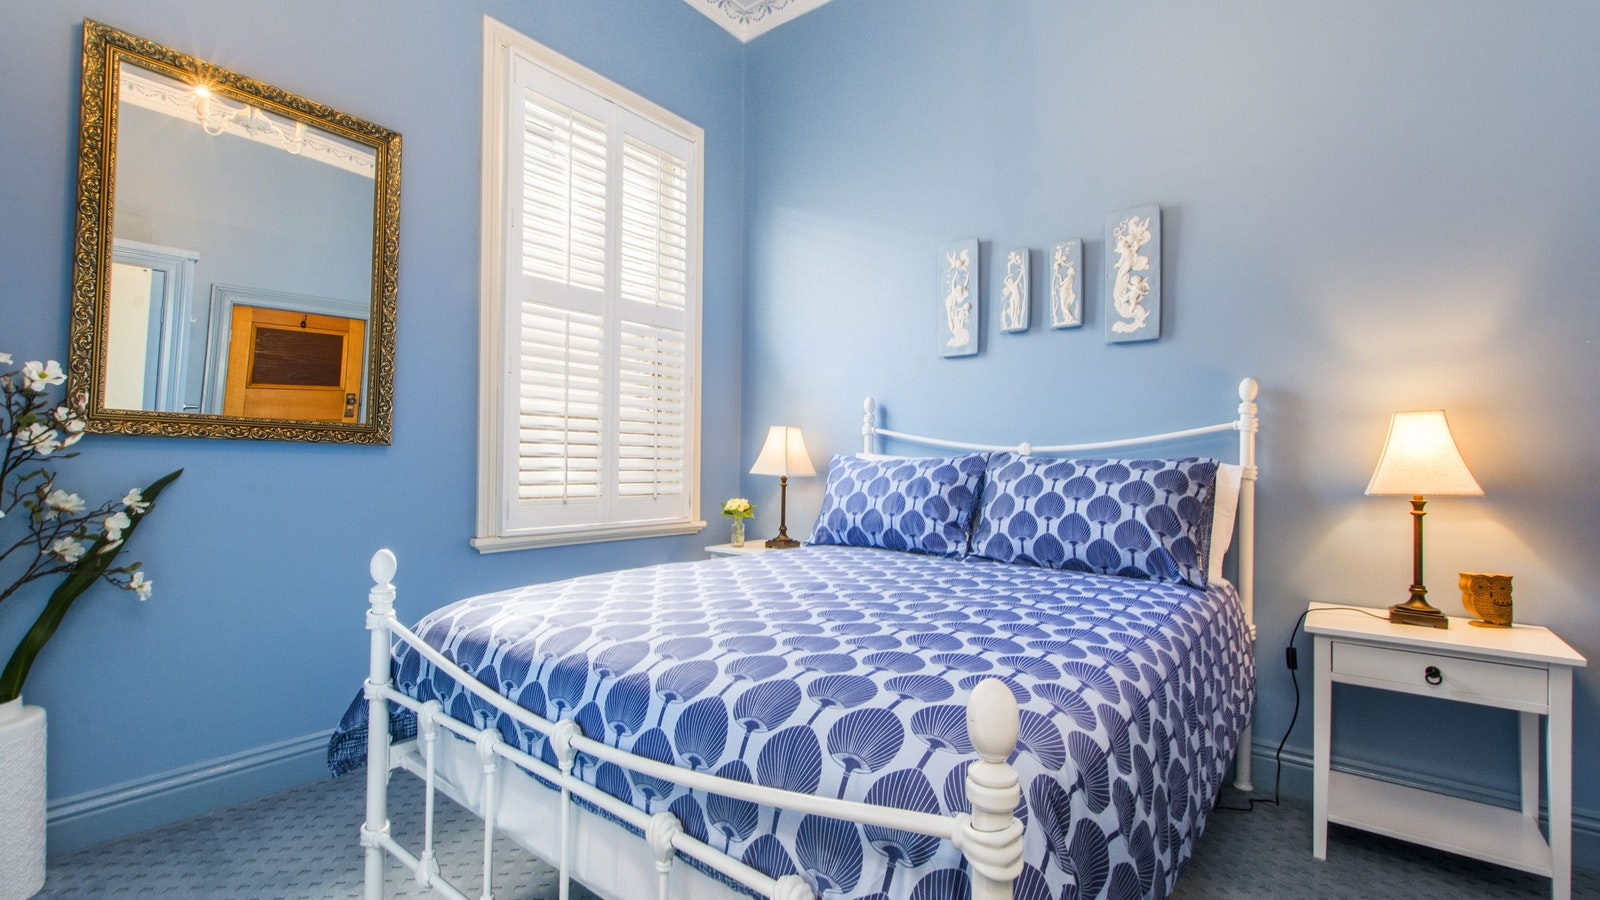 third bedroom in classic blue and white with DS bed